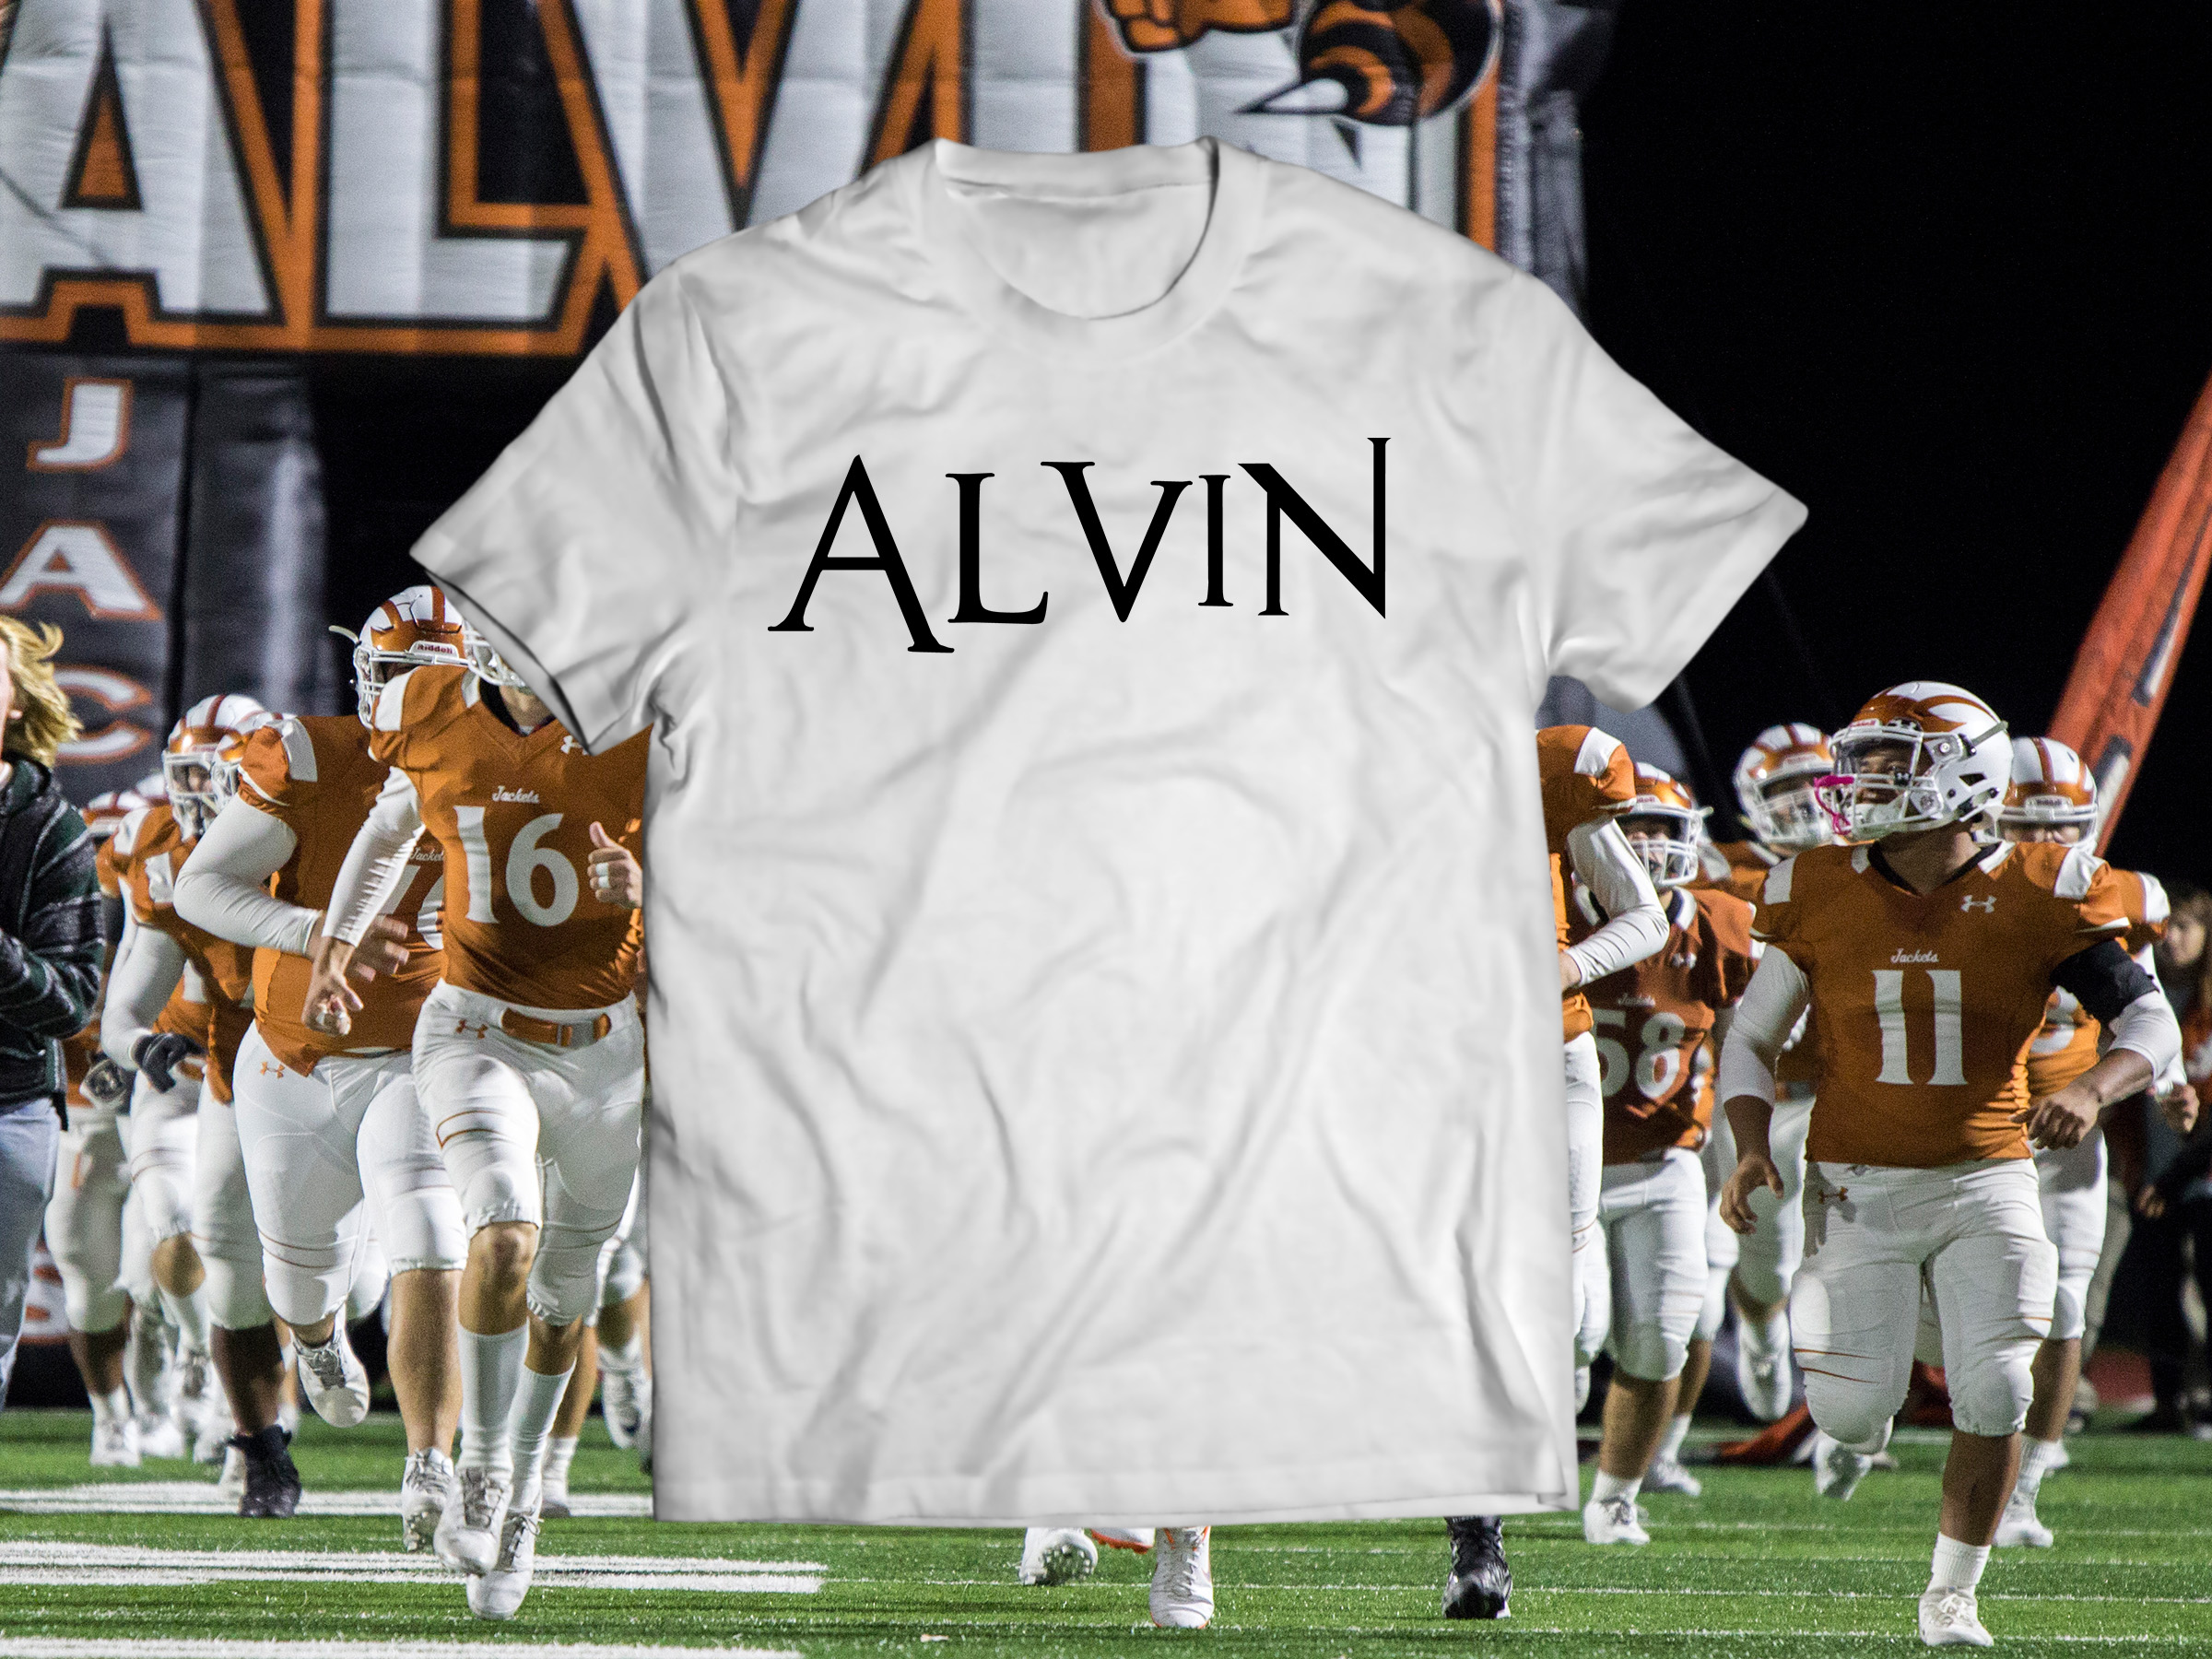 Alvin 914 Apparel! - Shirts, Hoodies, and so much more for Alvin students, teachers, and parents!